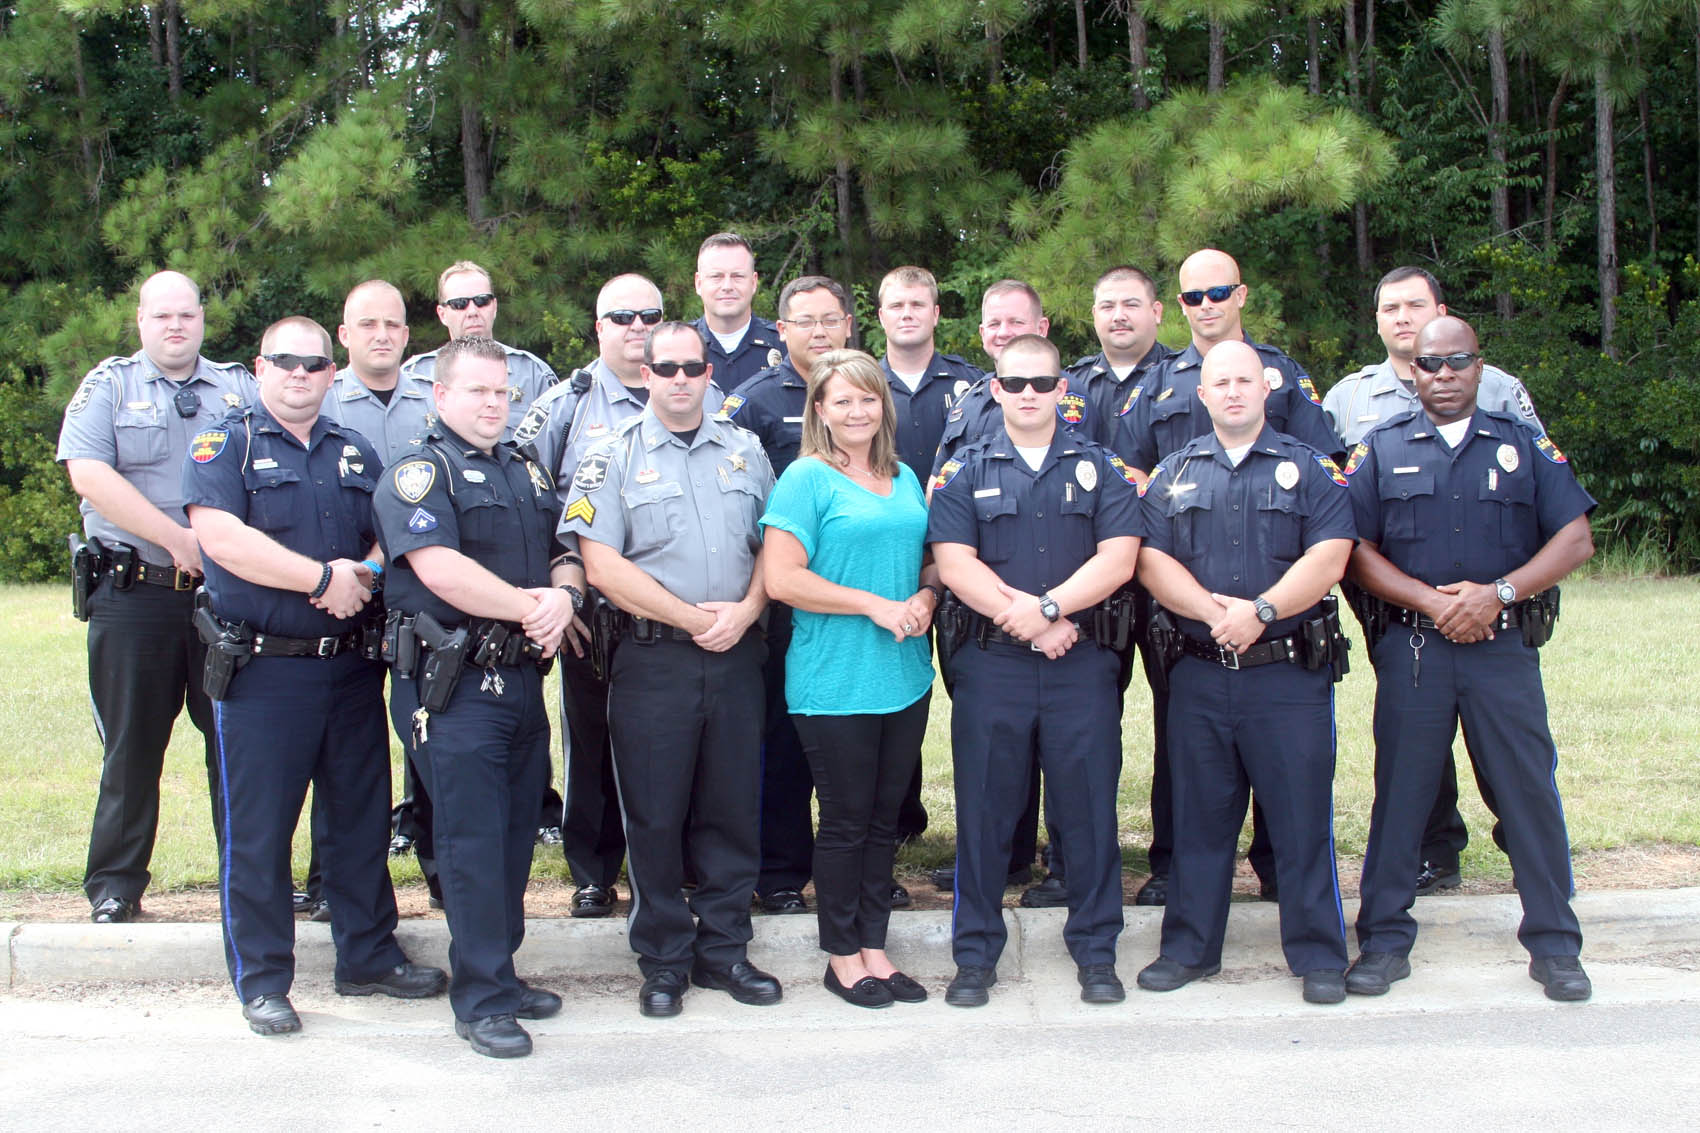 Click to enlarge,  Recent graduates of the Lee County Crisis Intervention Team training program were, left to right: front row, William Gardner, Anthony Norton, Kenneth Gilstrap, Audrey Baker, Mitchell Coggins, Johnathan Dorman and William Heck; back; row, Zachary Petty, Jerod Kirk, Mitchell Ashley, William Malan, Kenneth Hair, Kenneth Ott, Nathan Snyder, Billy Rodgers, William Kidd, James Young and Charles Jordan. Not pictured is Tyler Bridges.